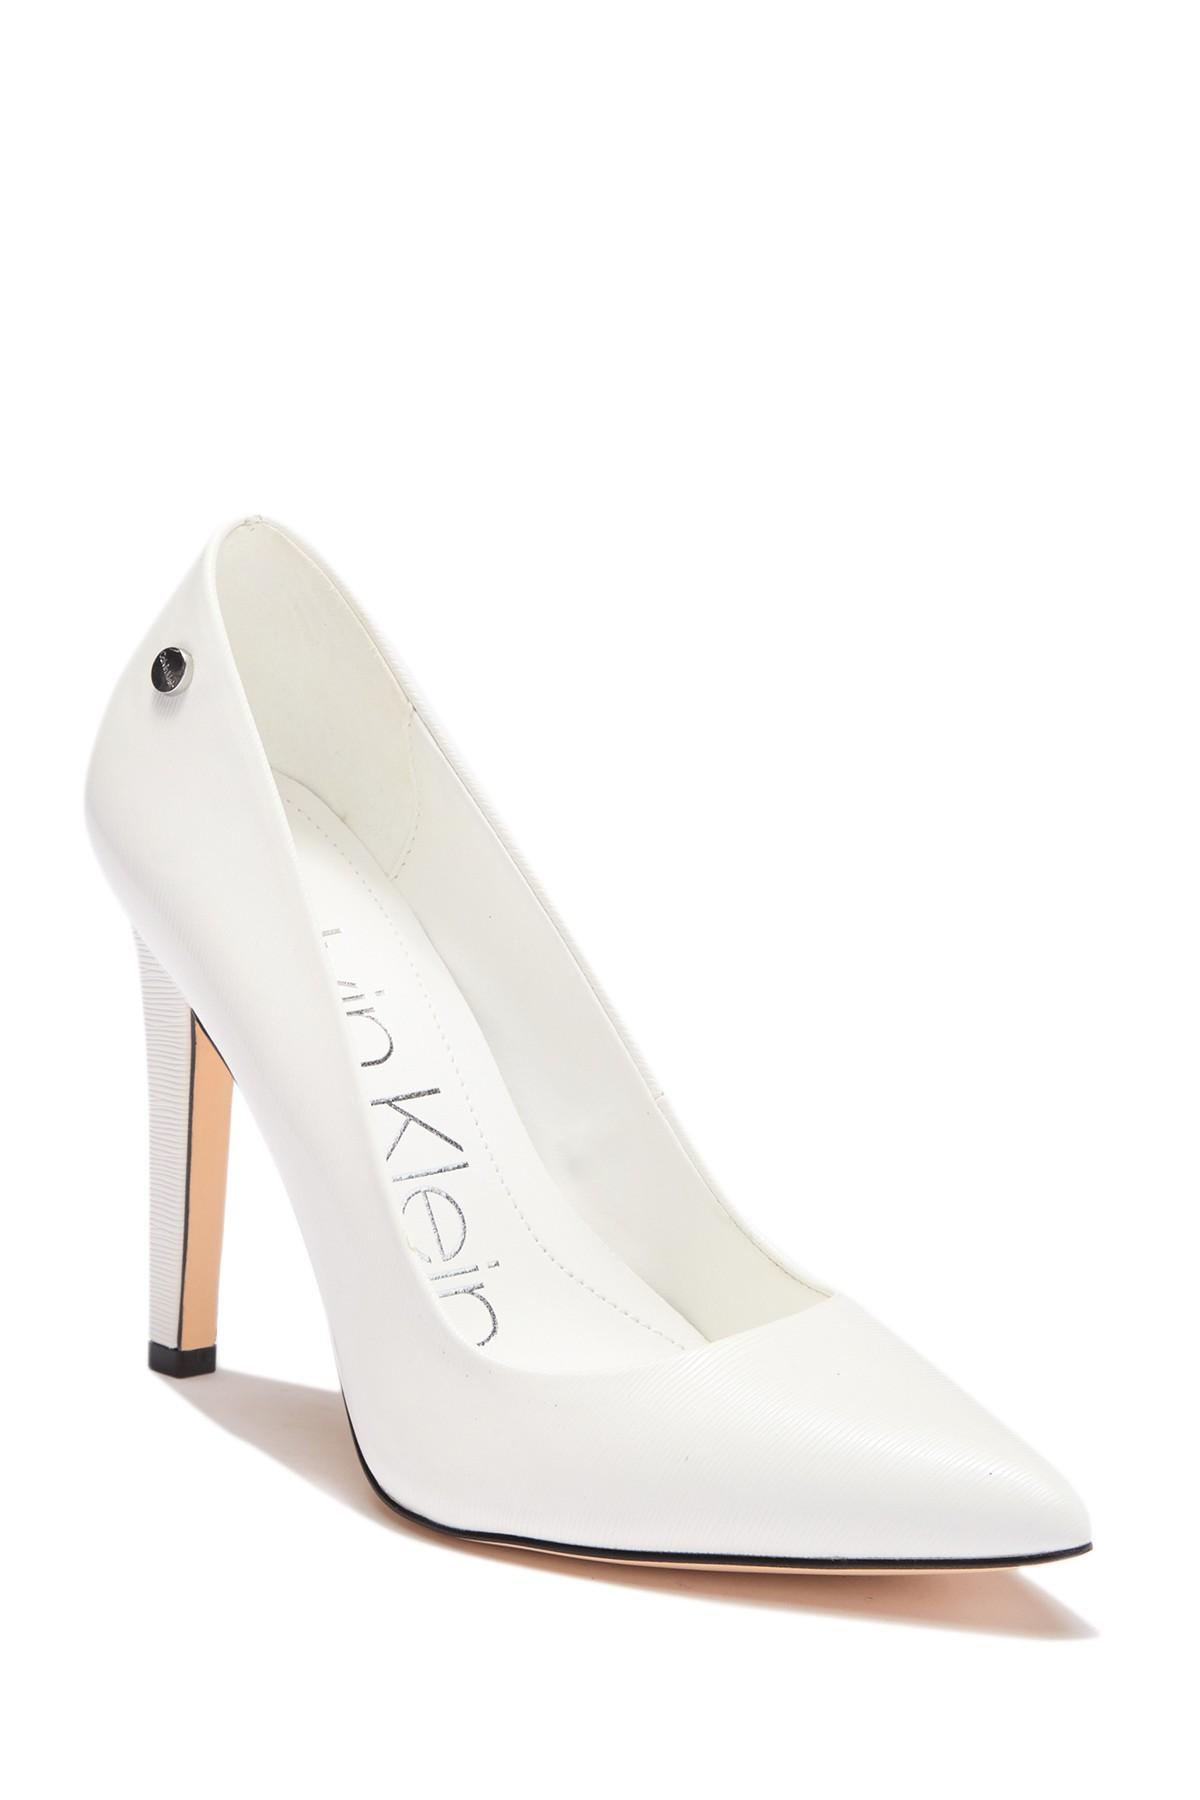 06302d5b120 Lyst - Calvin Klein Brady Liquid Smooth Patent Pump in White